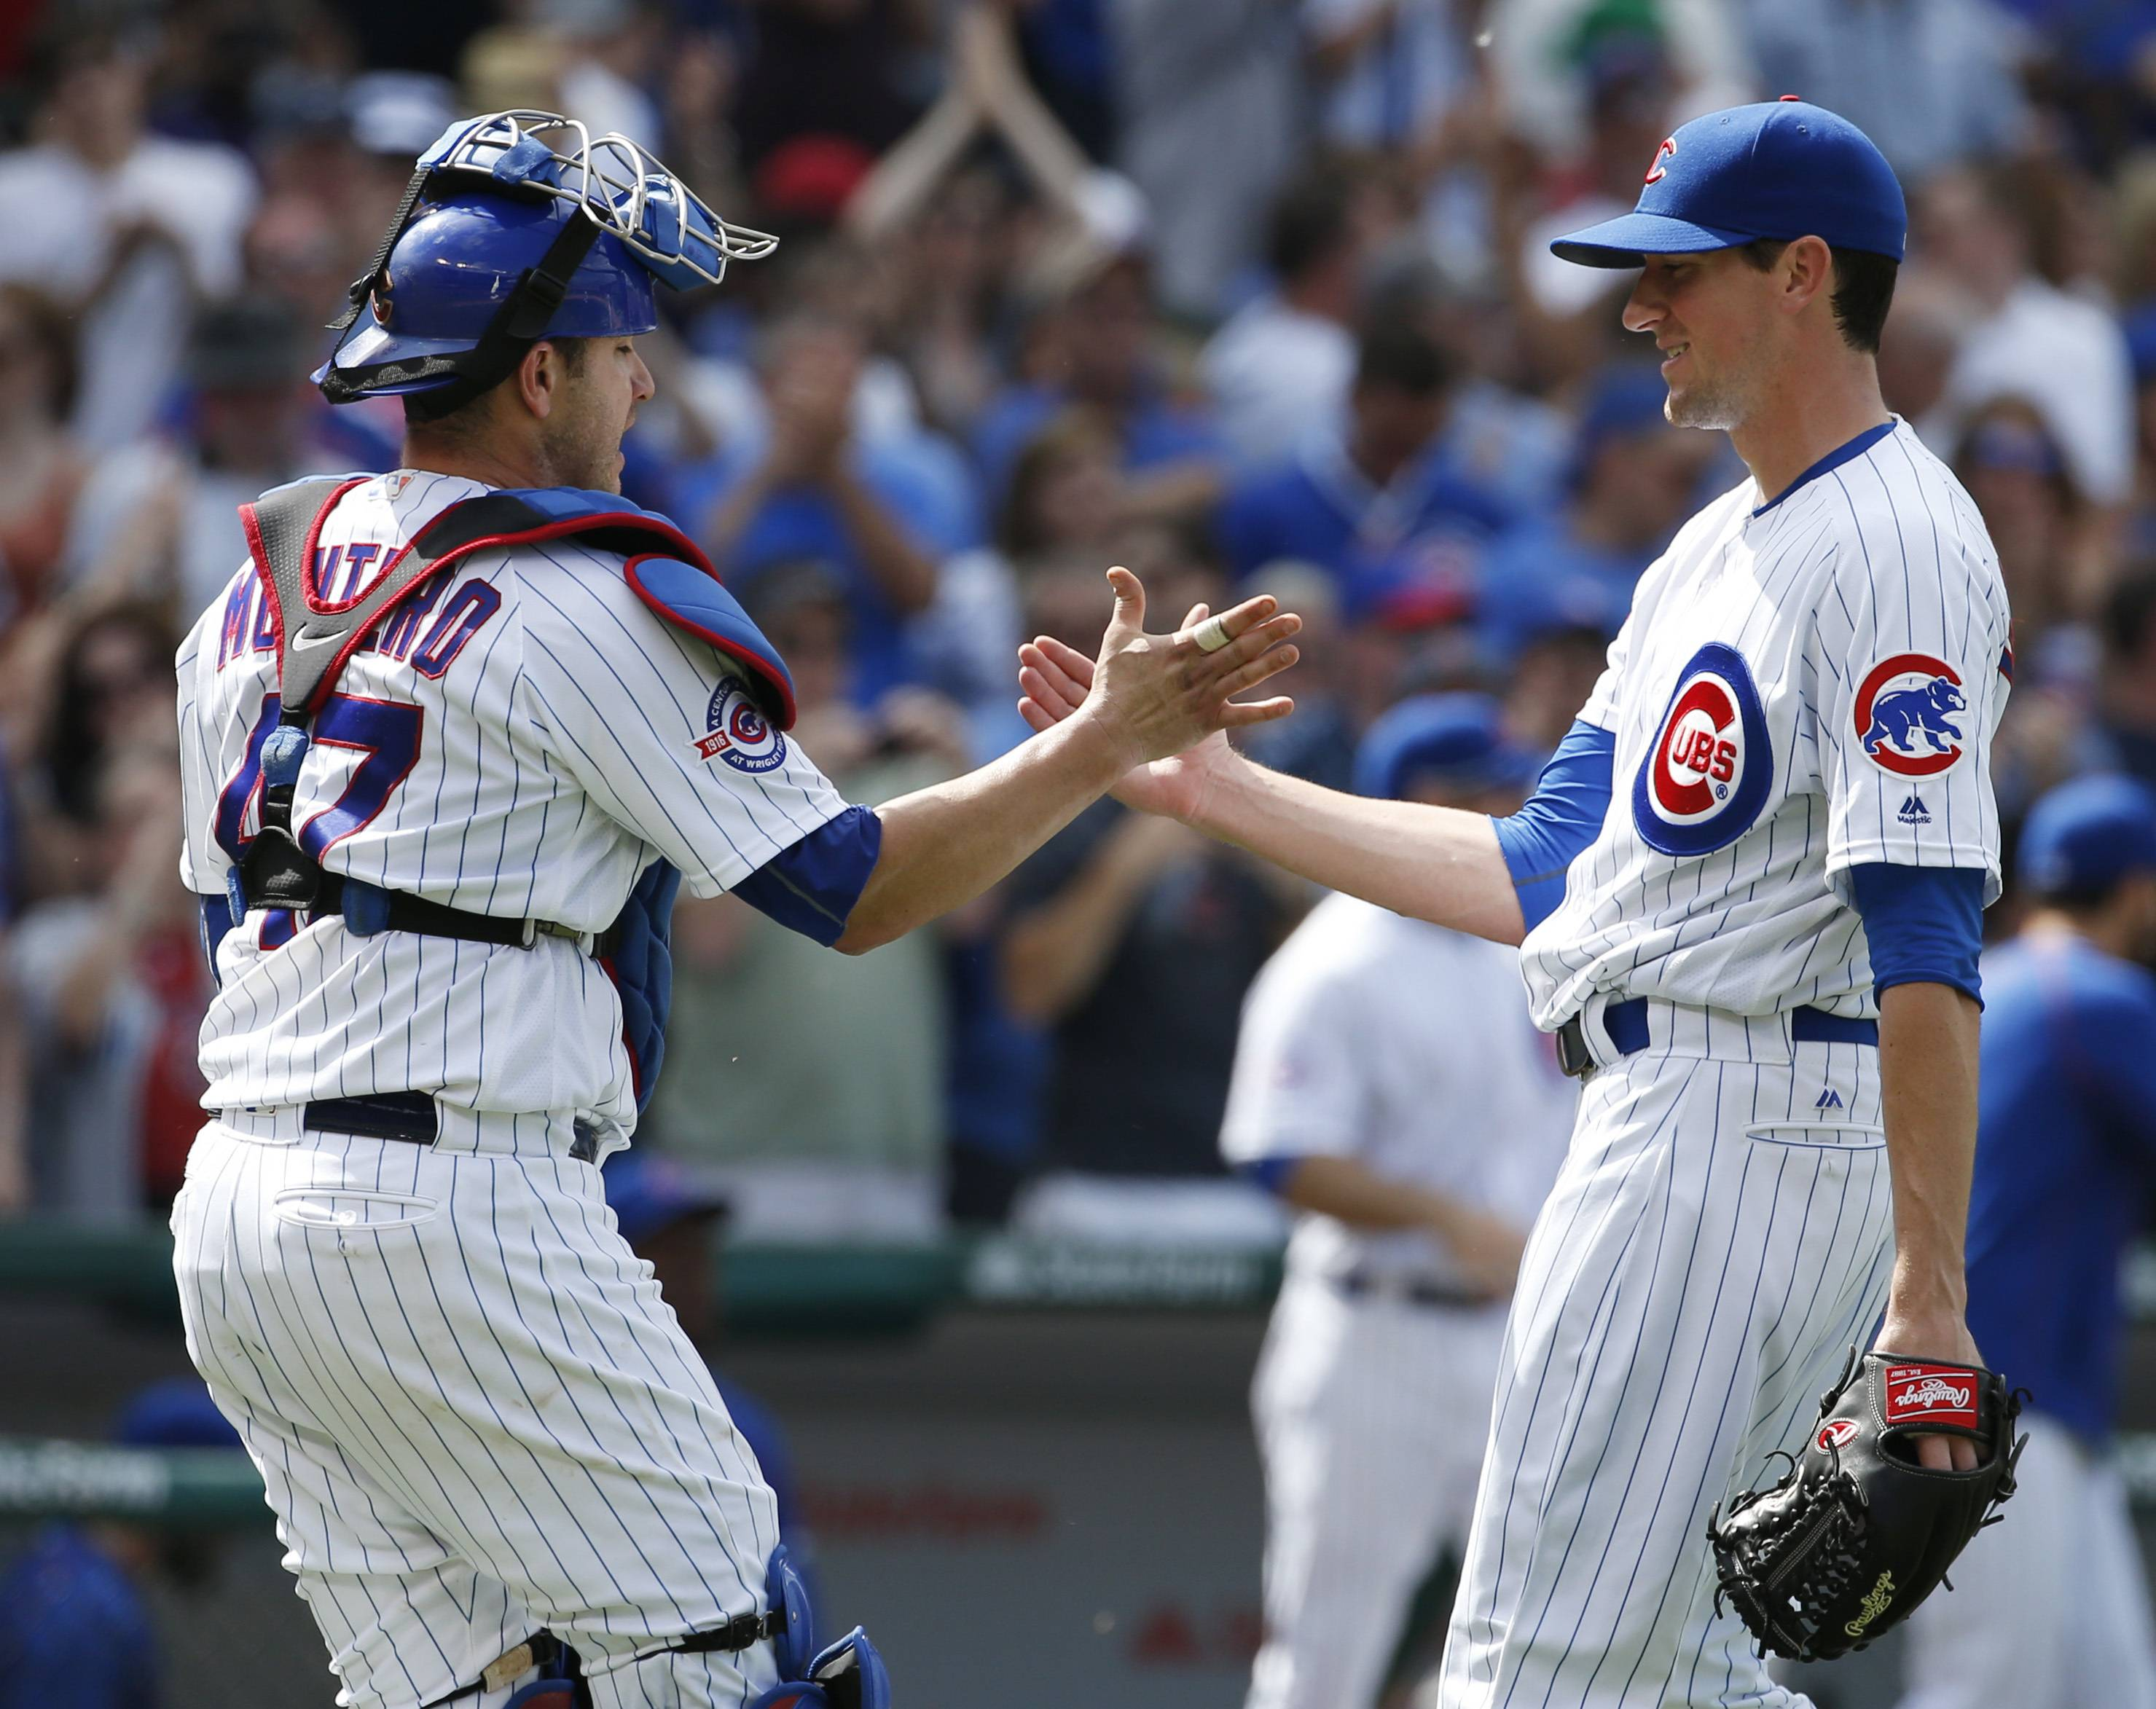 Cubs starter Kyle Hendricks celebrates with catcher Miguel Montero after the Cubs defeated the Philadelphia Phillies 4-1 on Saturday at Wrigley Field.